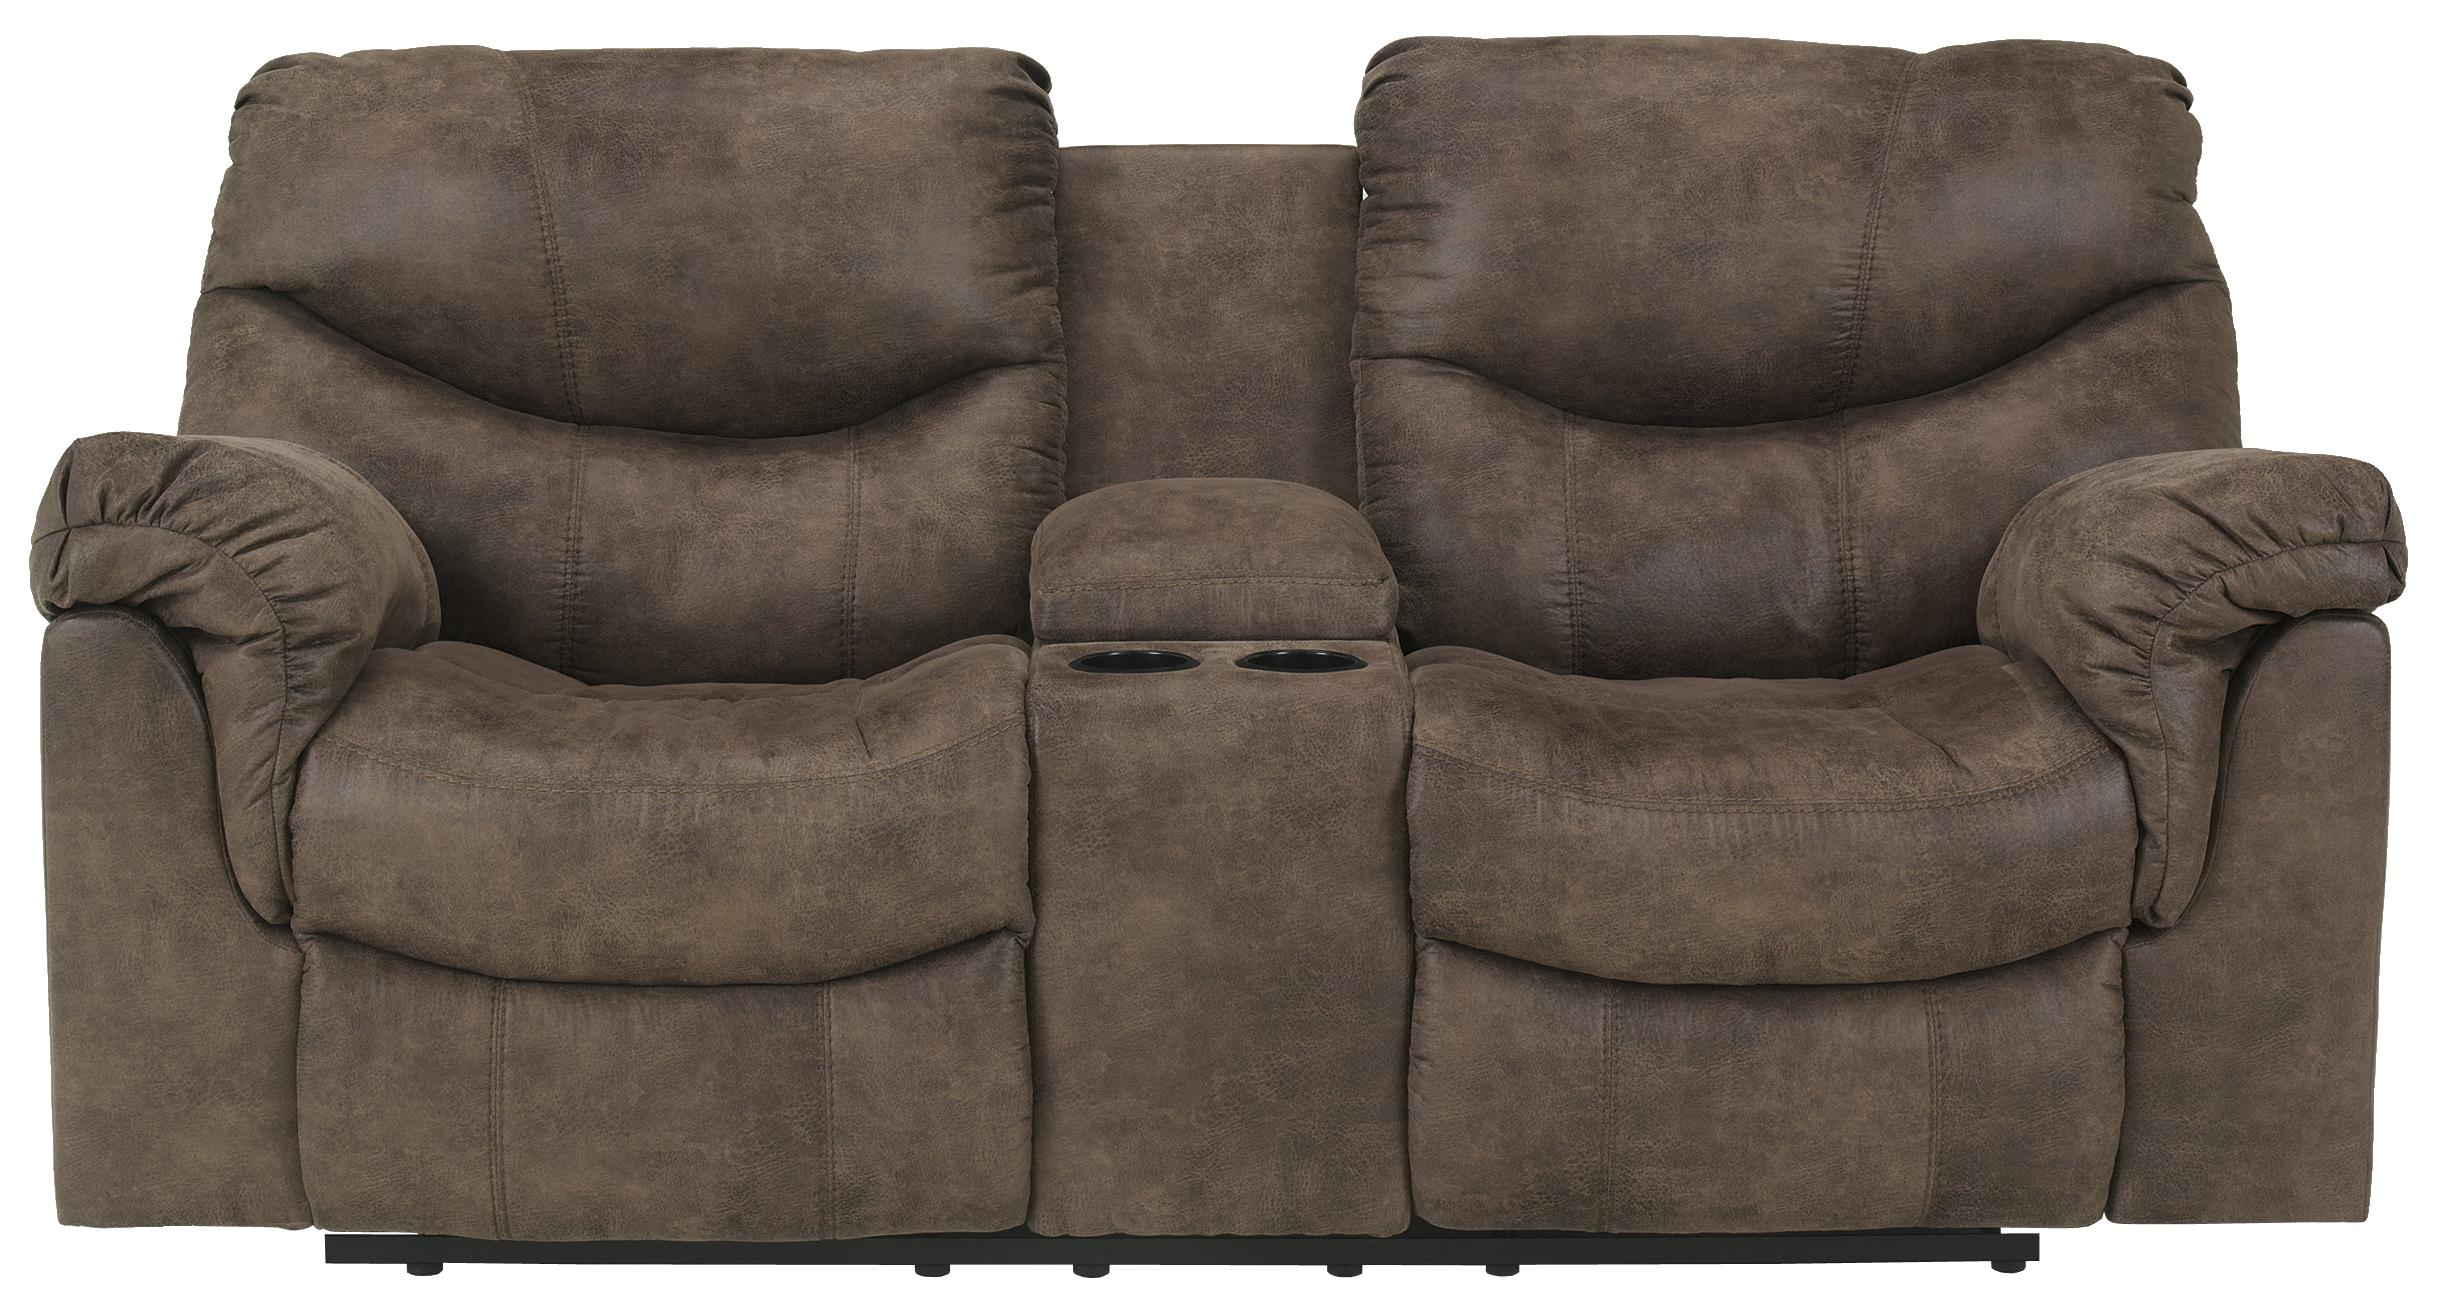 Signature Design by Ashley Alzena - Gunsmoke DBL REC PWR Loveseat w/Console - Item Number: 7140096